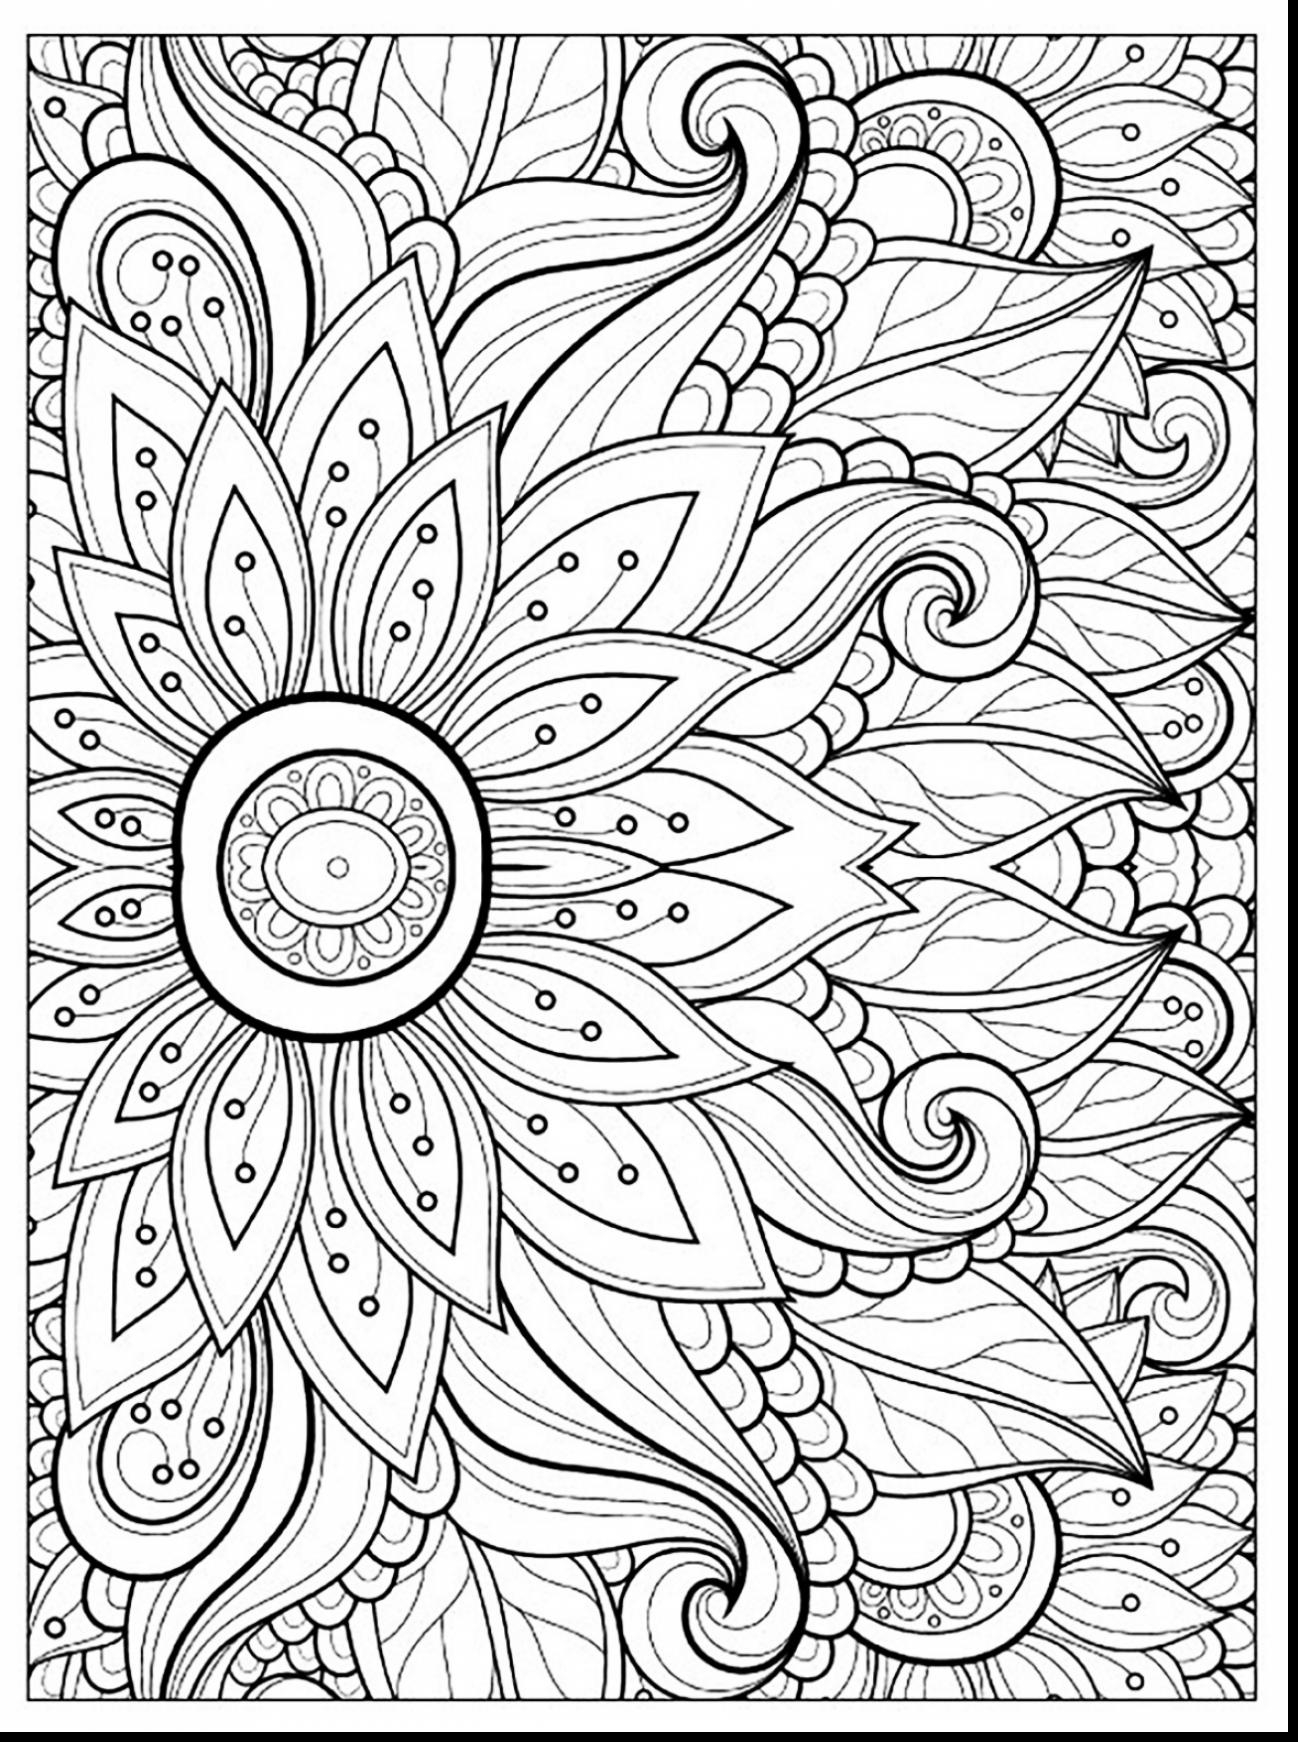 Wonderful Photo Of Coloring Pages For Adults Flowers Rhentitlementtrap: Coloring Pages For Adults Of Flowers At Baymontmadison.com